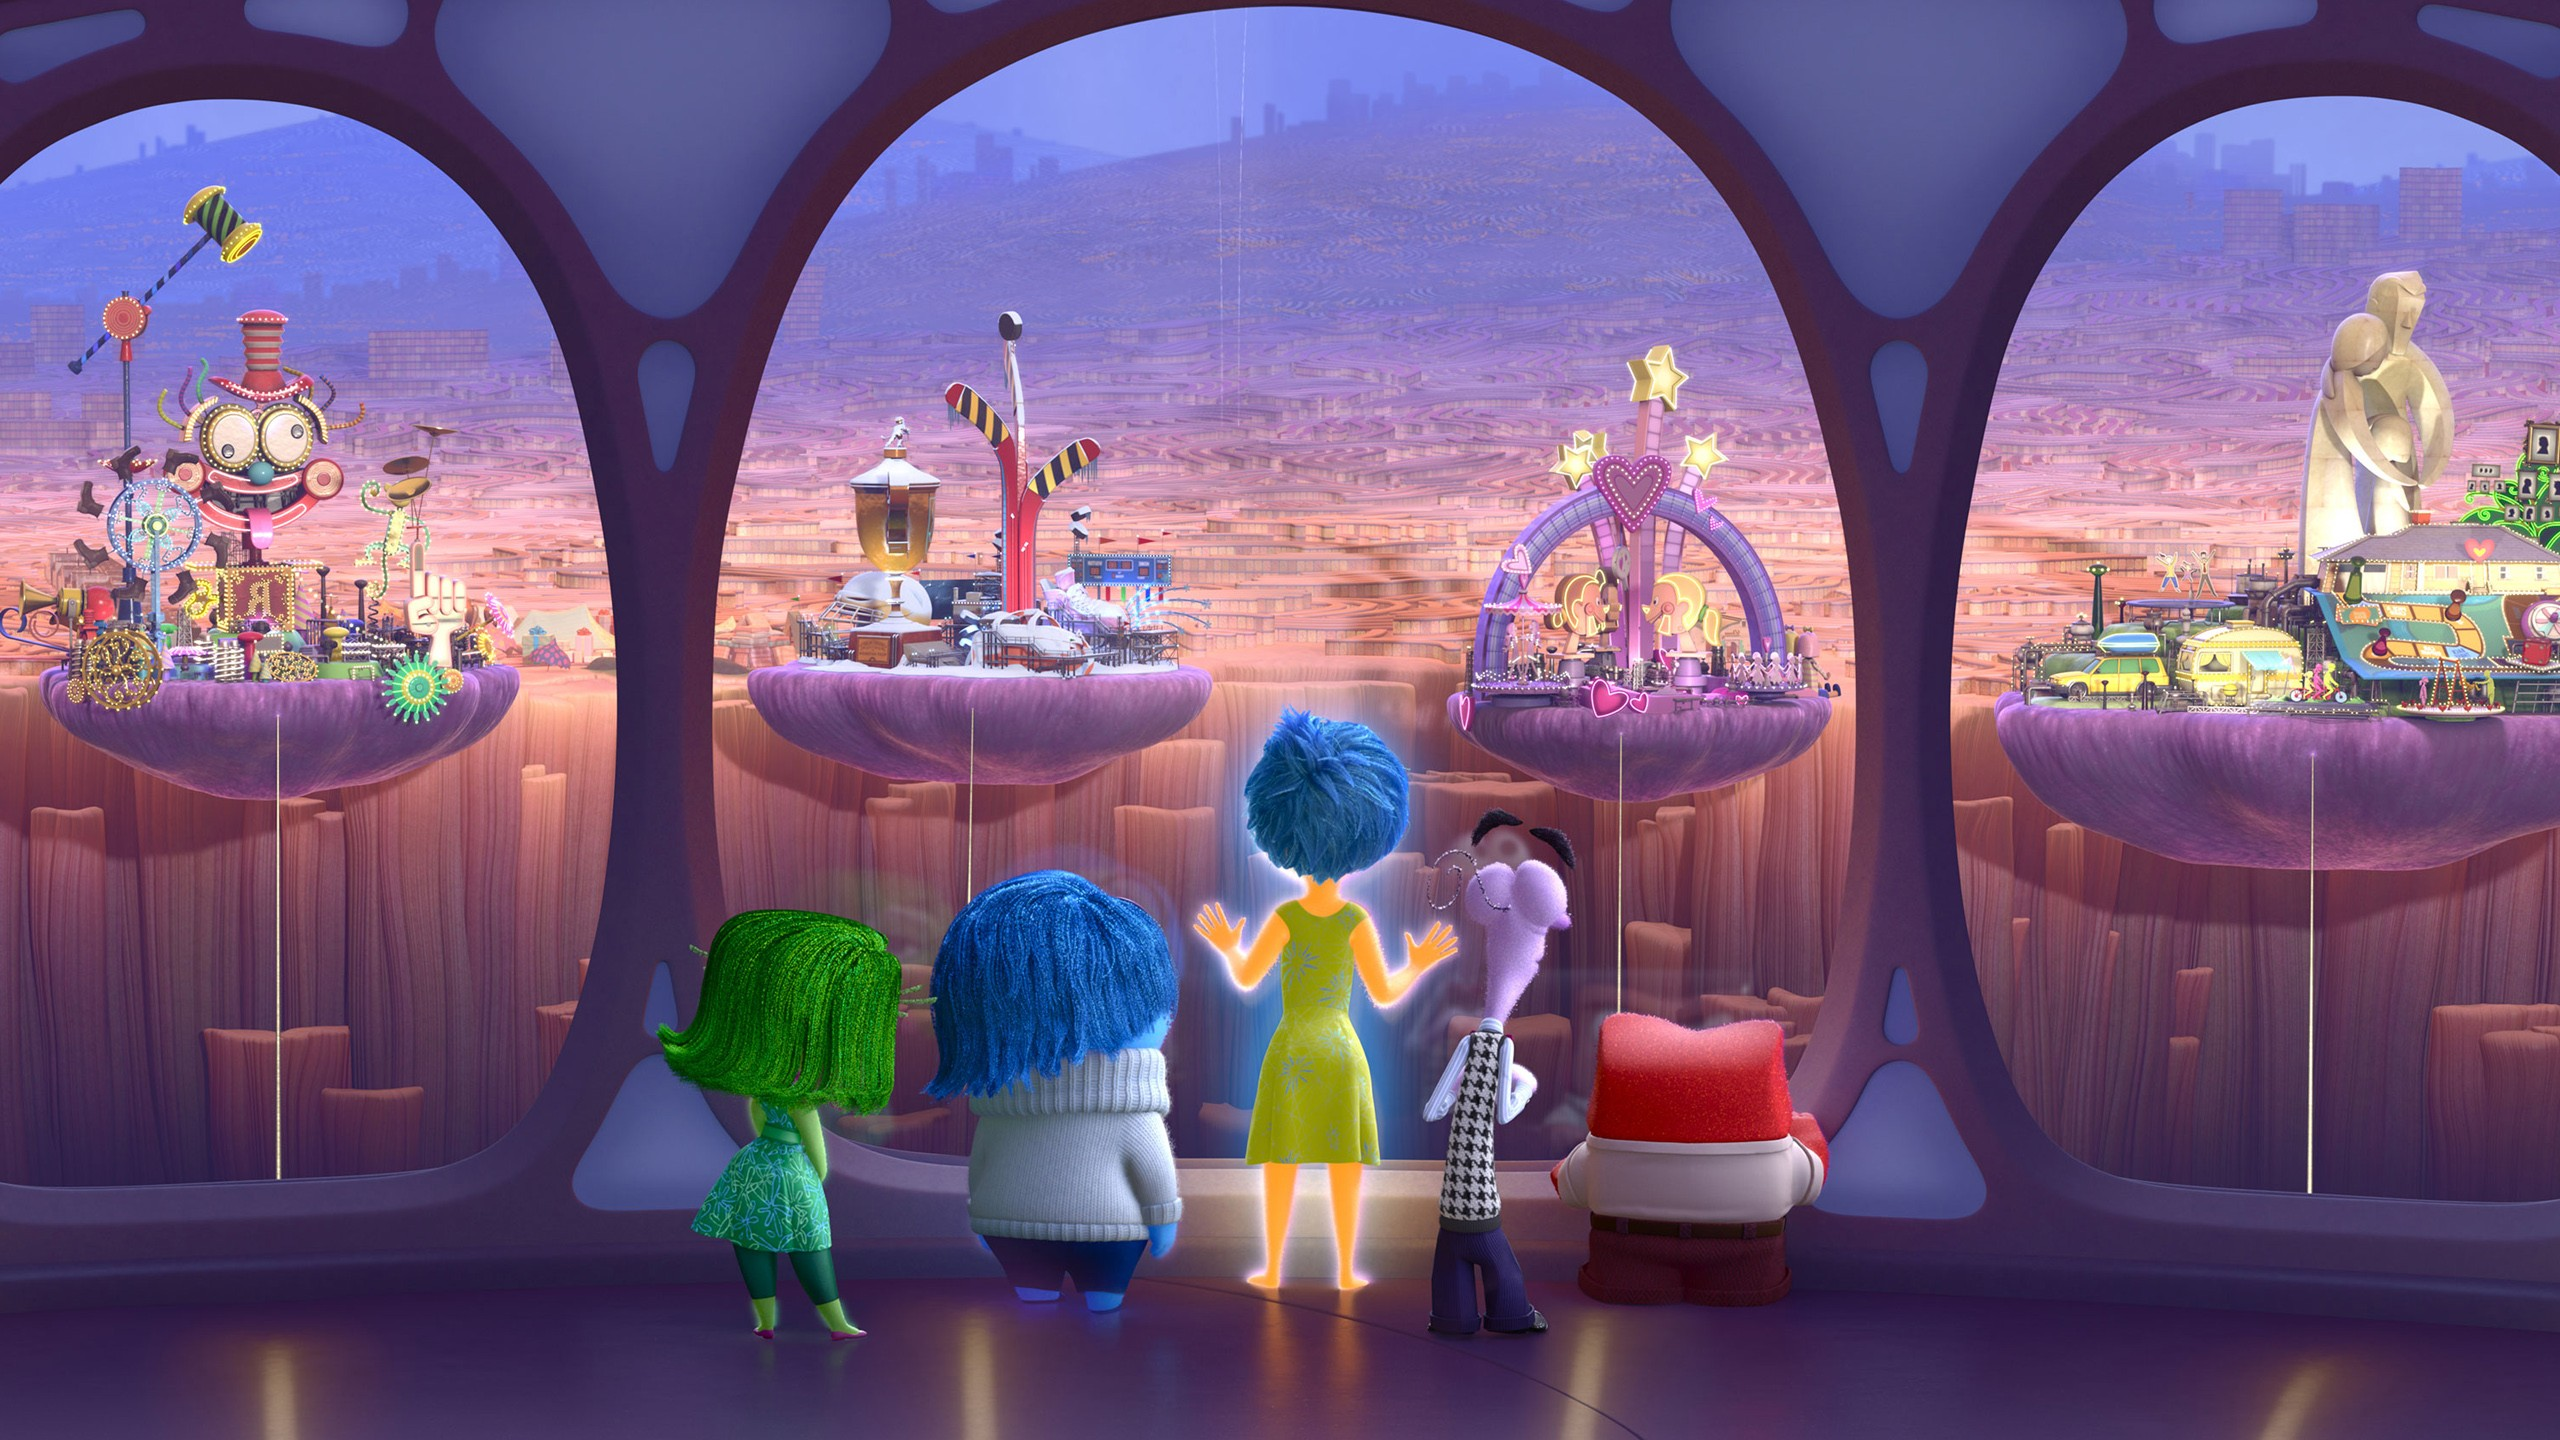 Cute Animated Wallpapers For Mobile Gif Inside Out Personality Islands Hd Movies 4k Wallpapers